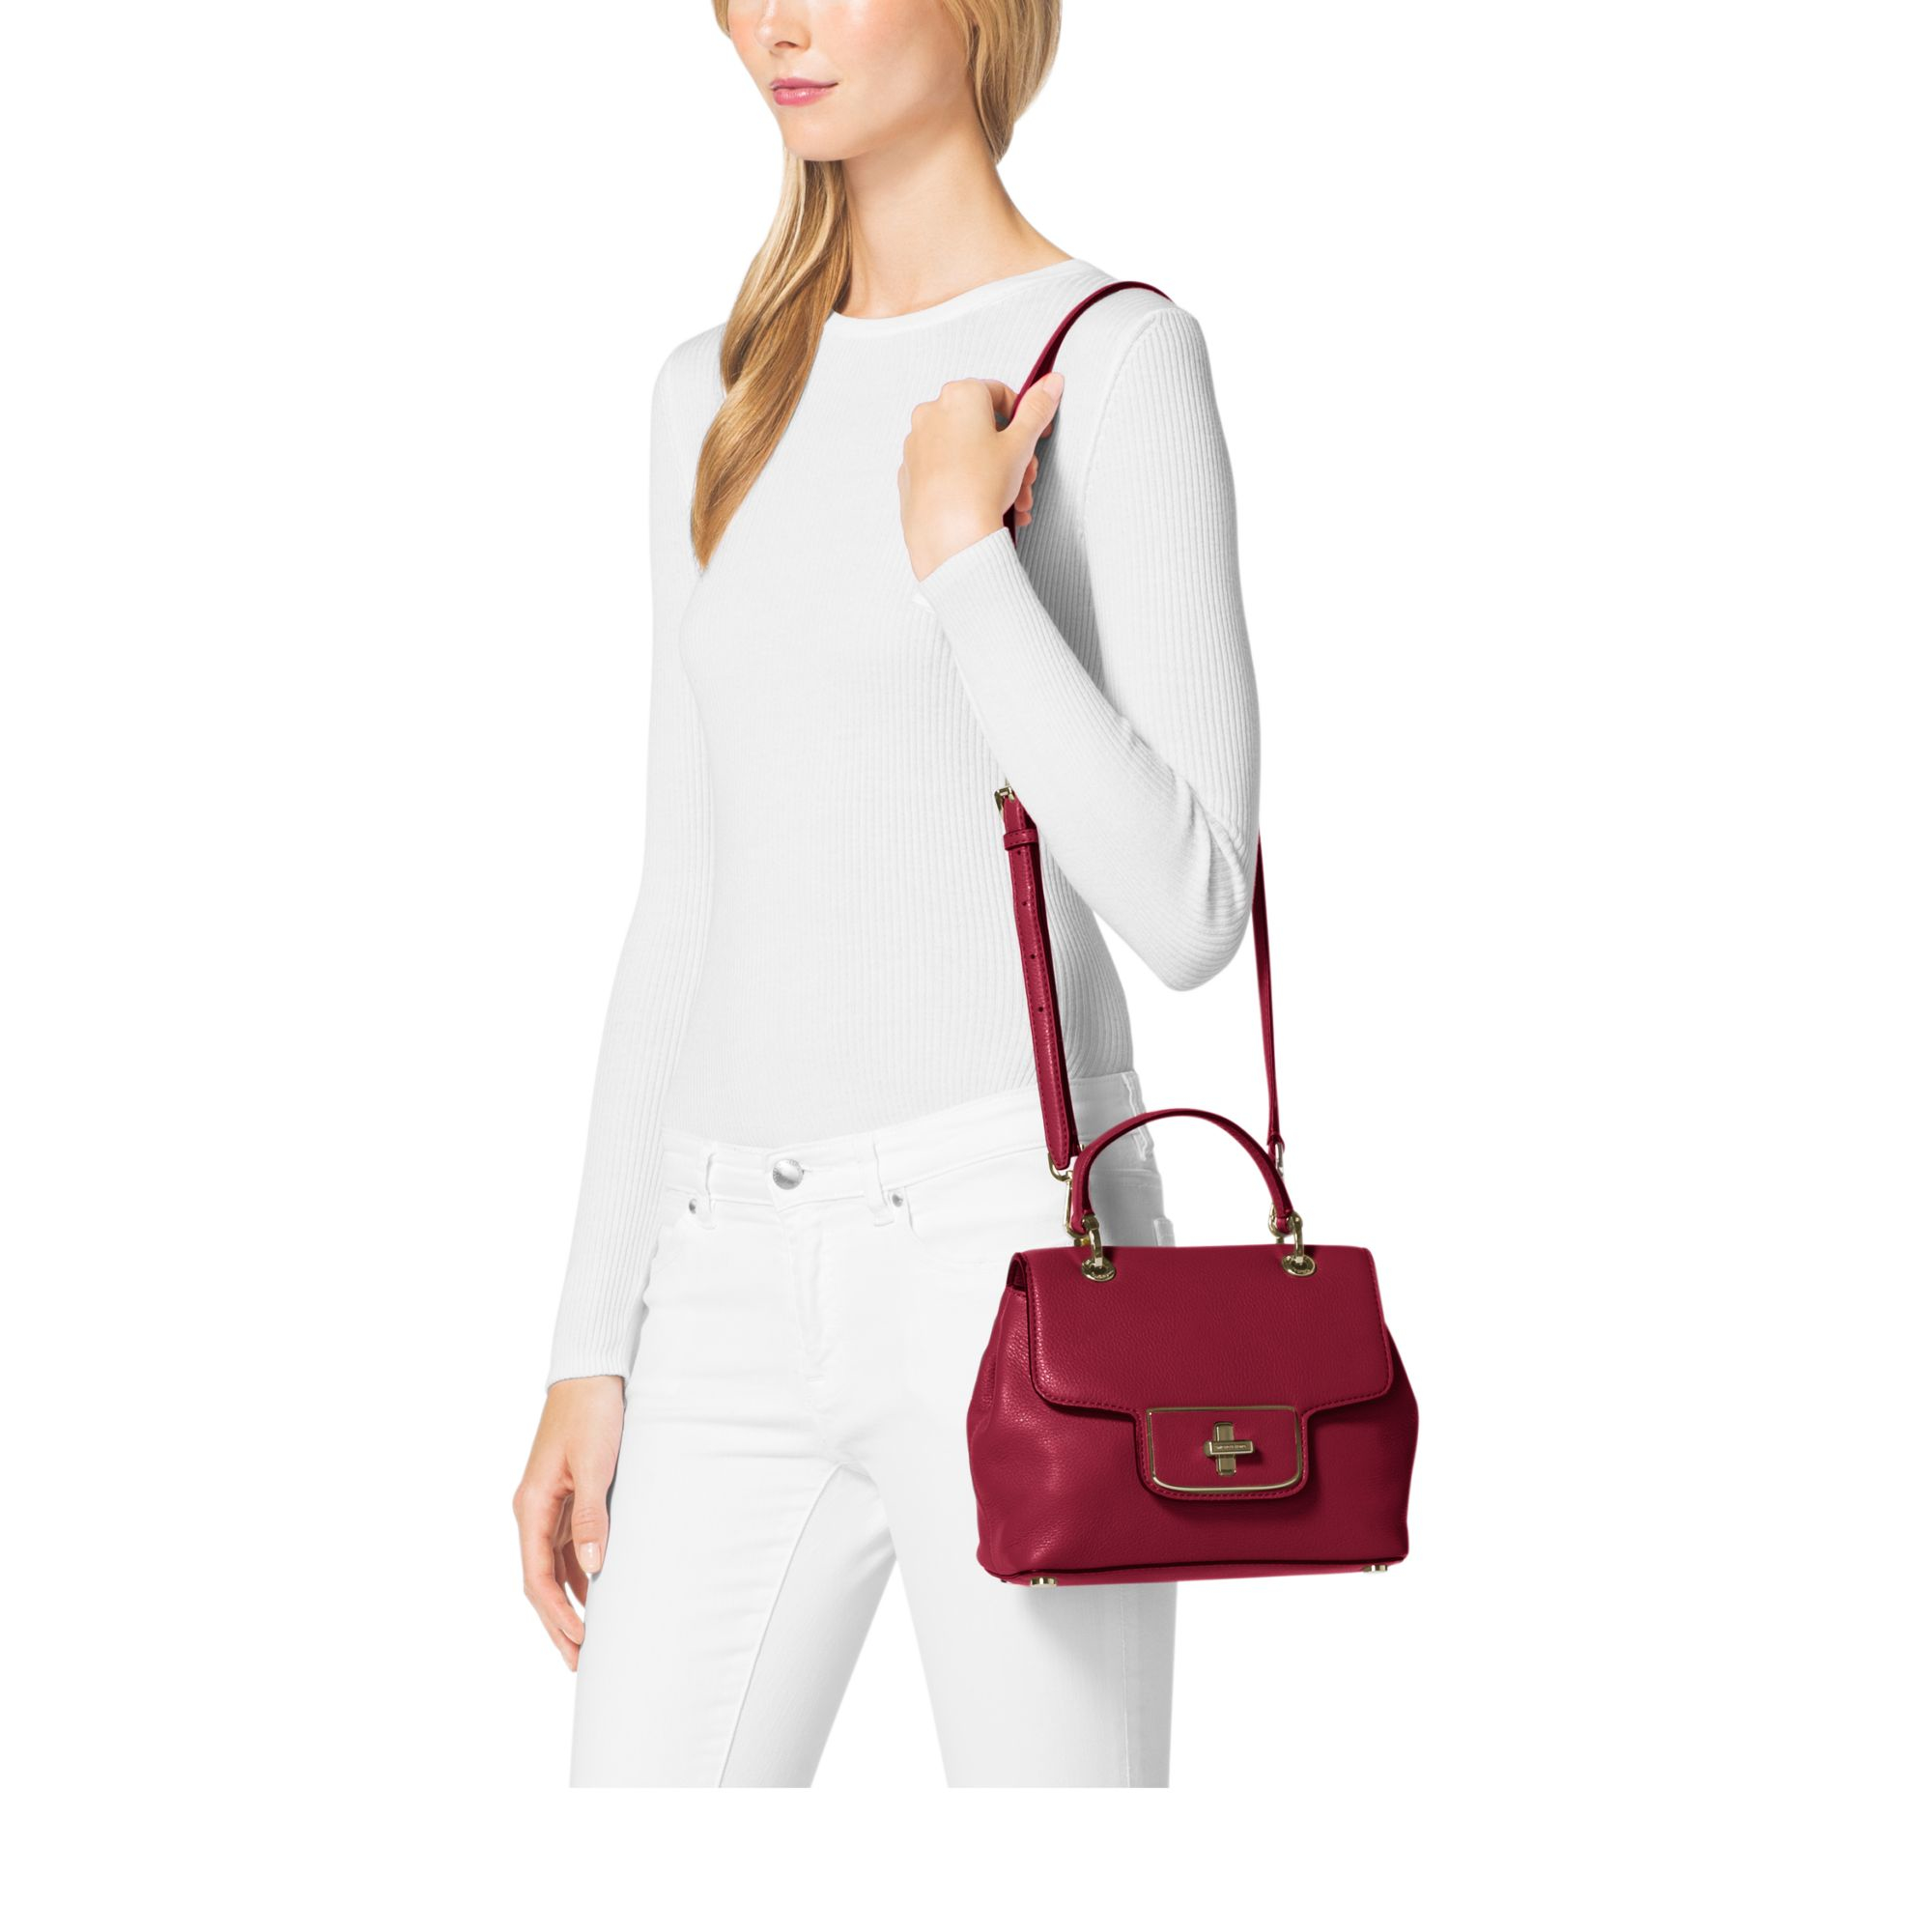 260b7fa90118 ... wholesale lyst michael kors emery small leather satchel in red 4a25b  e8909